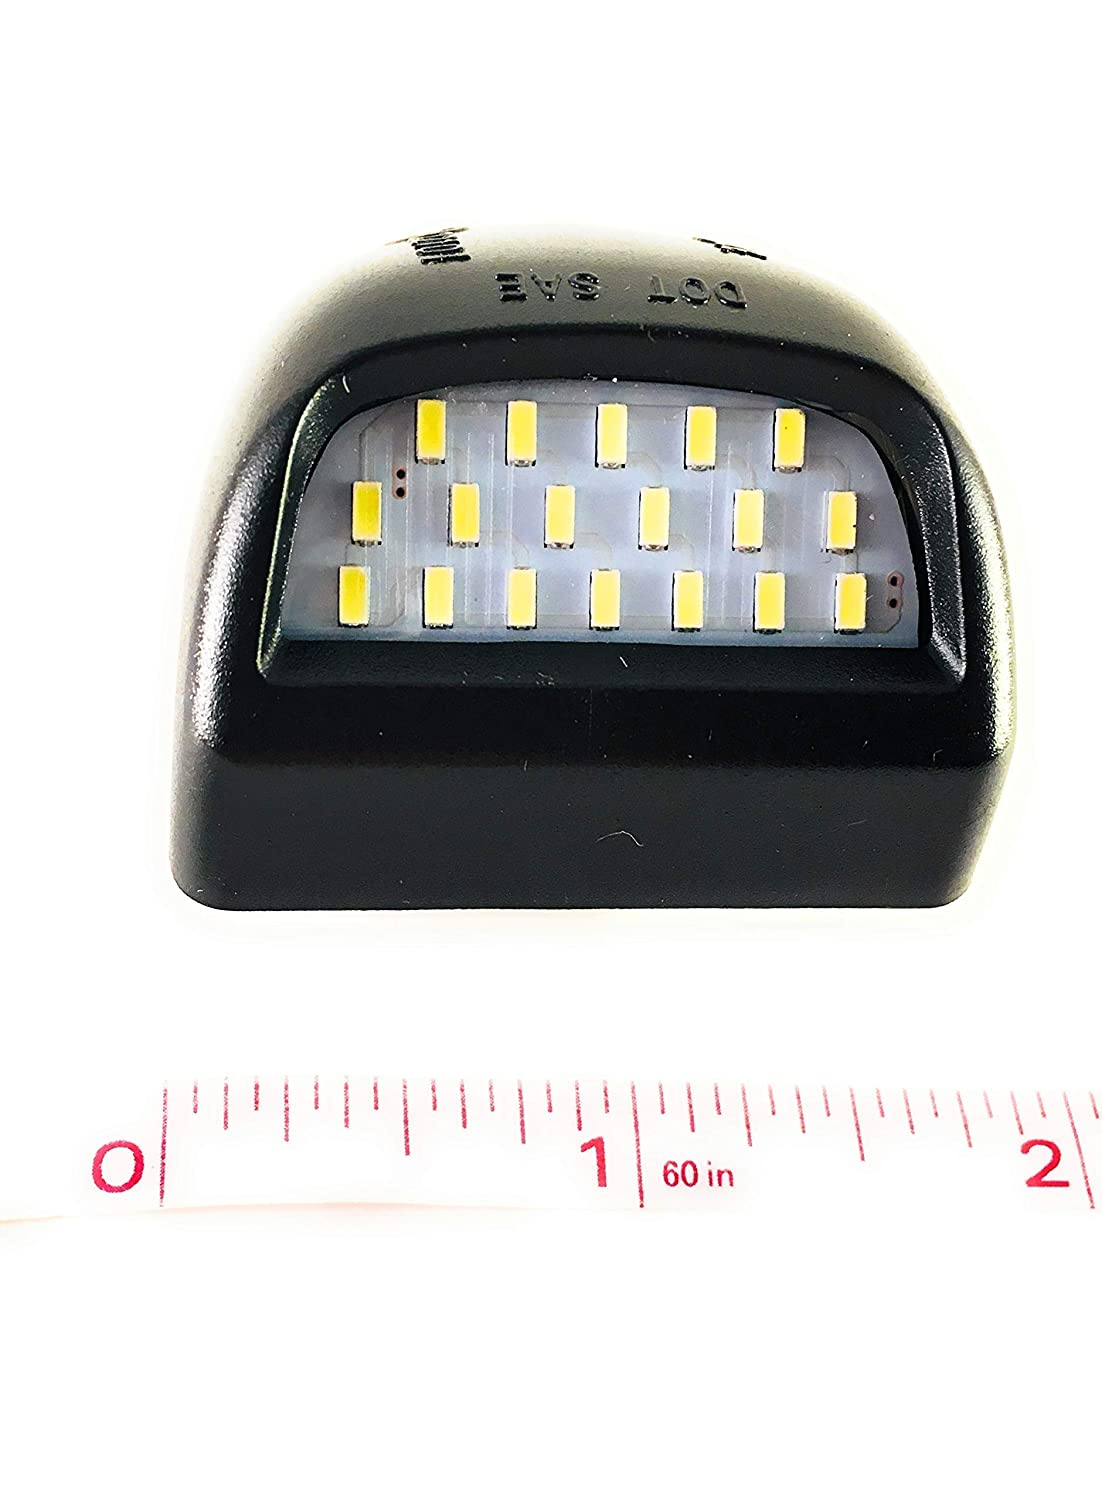 Ozsey LED License Plate Light Lamp Assembly Tag Light Lamp Assembly for Chevy Silverado Tahoe Surburban 1500 2500 3500 Avalanche GMC Sierra Yukon 1500 2500 3500 Cadillac Escalade